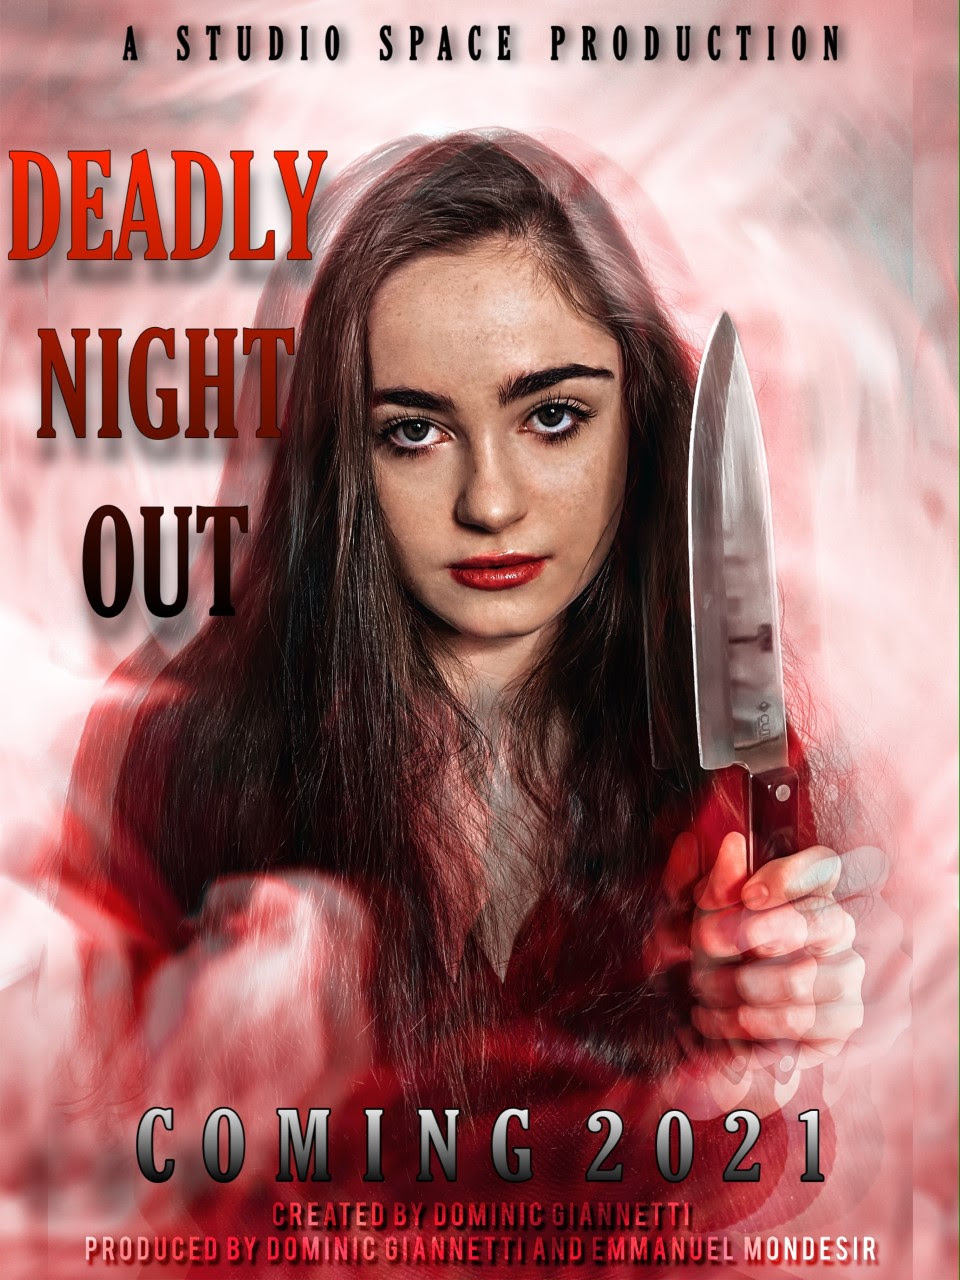 'DEADLY NIGHT OUT' BEGINS FILMING SEPTEMBER